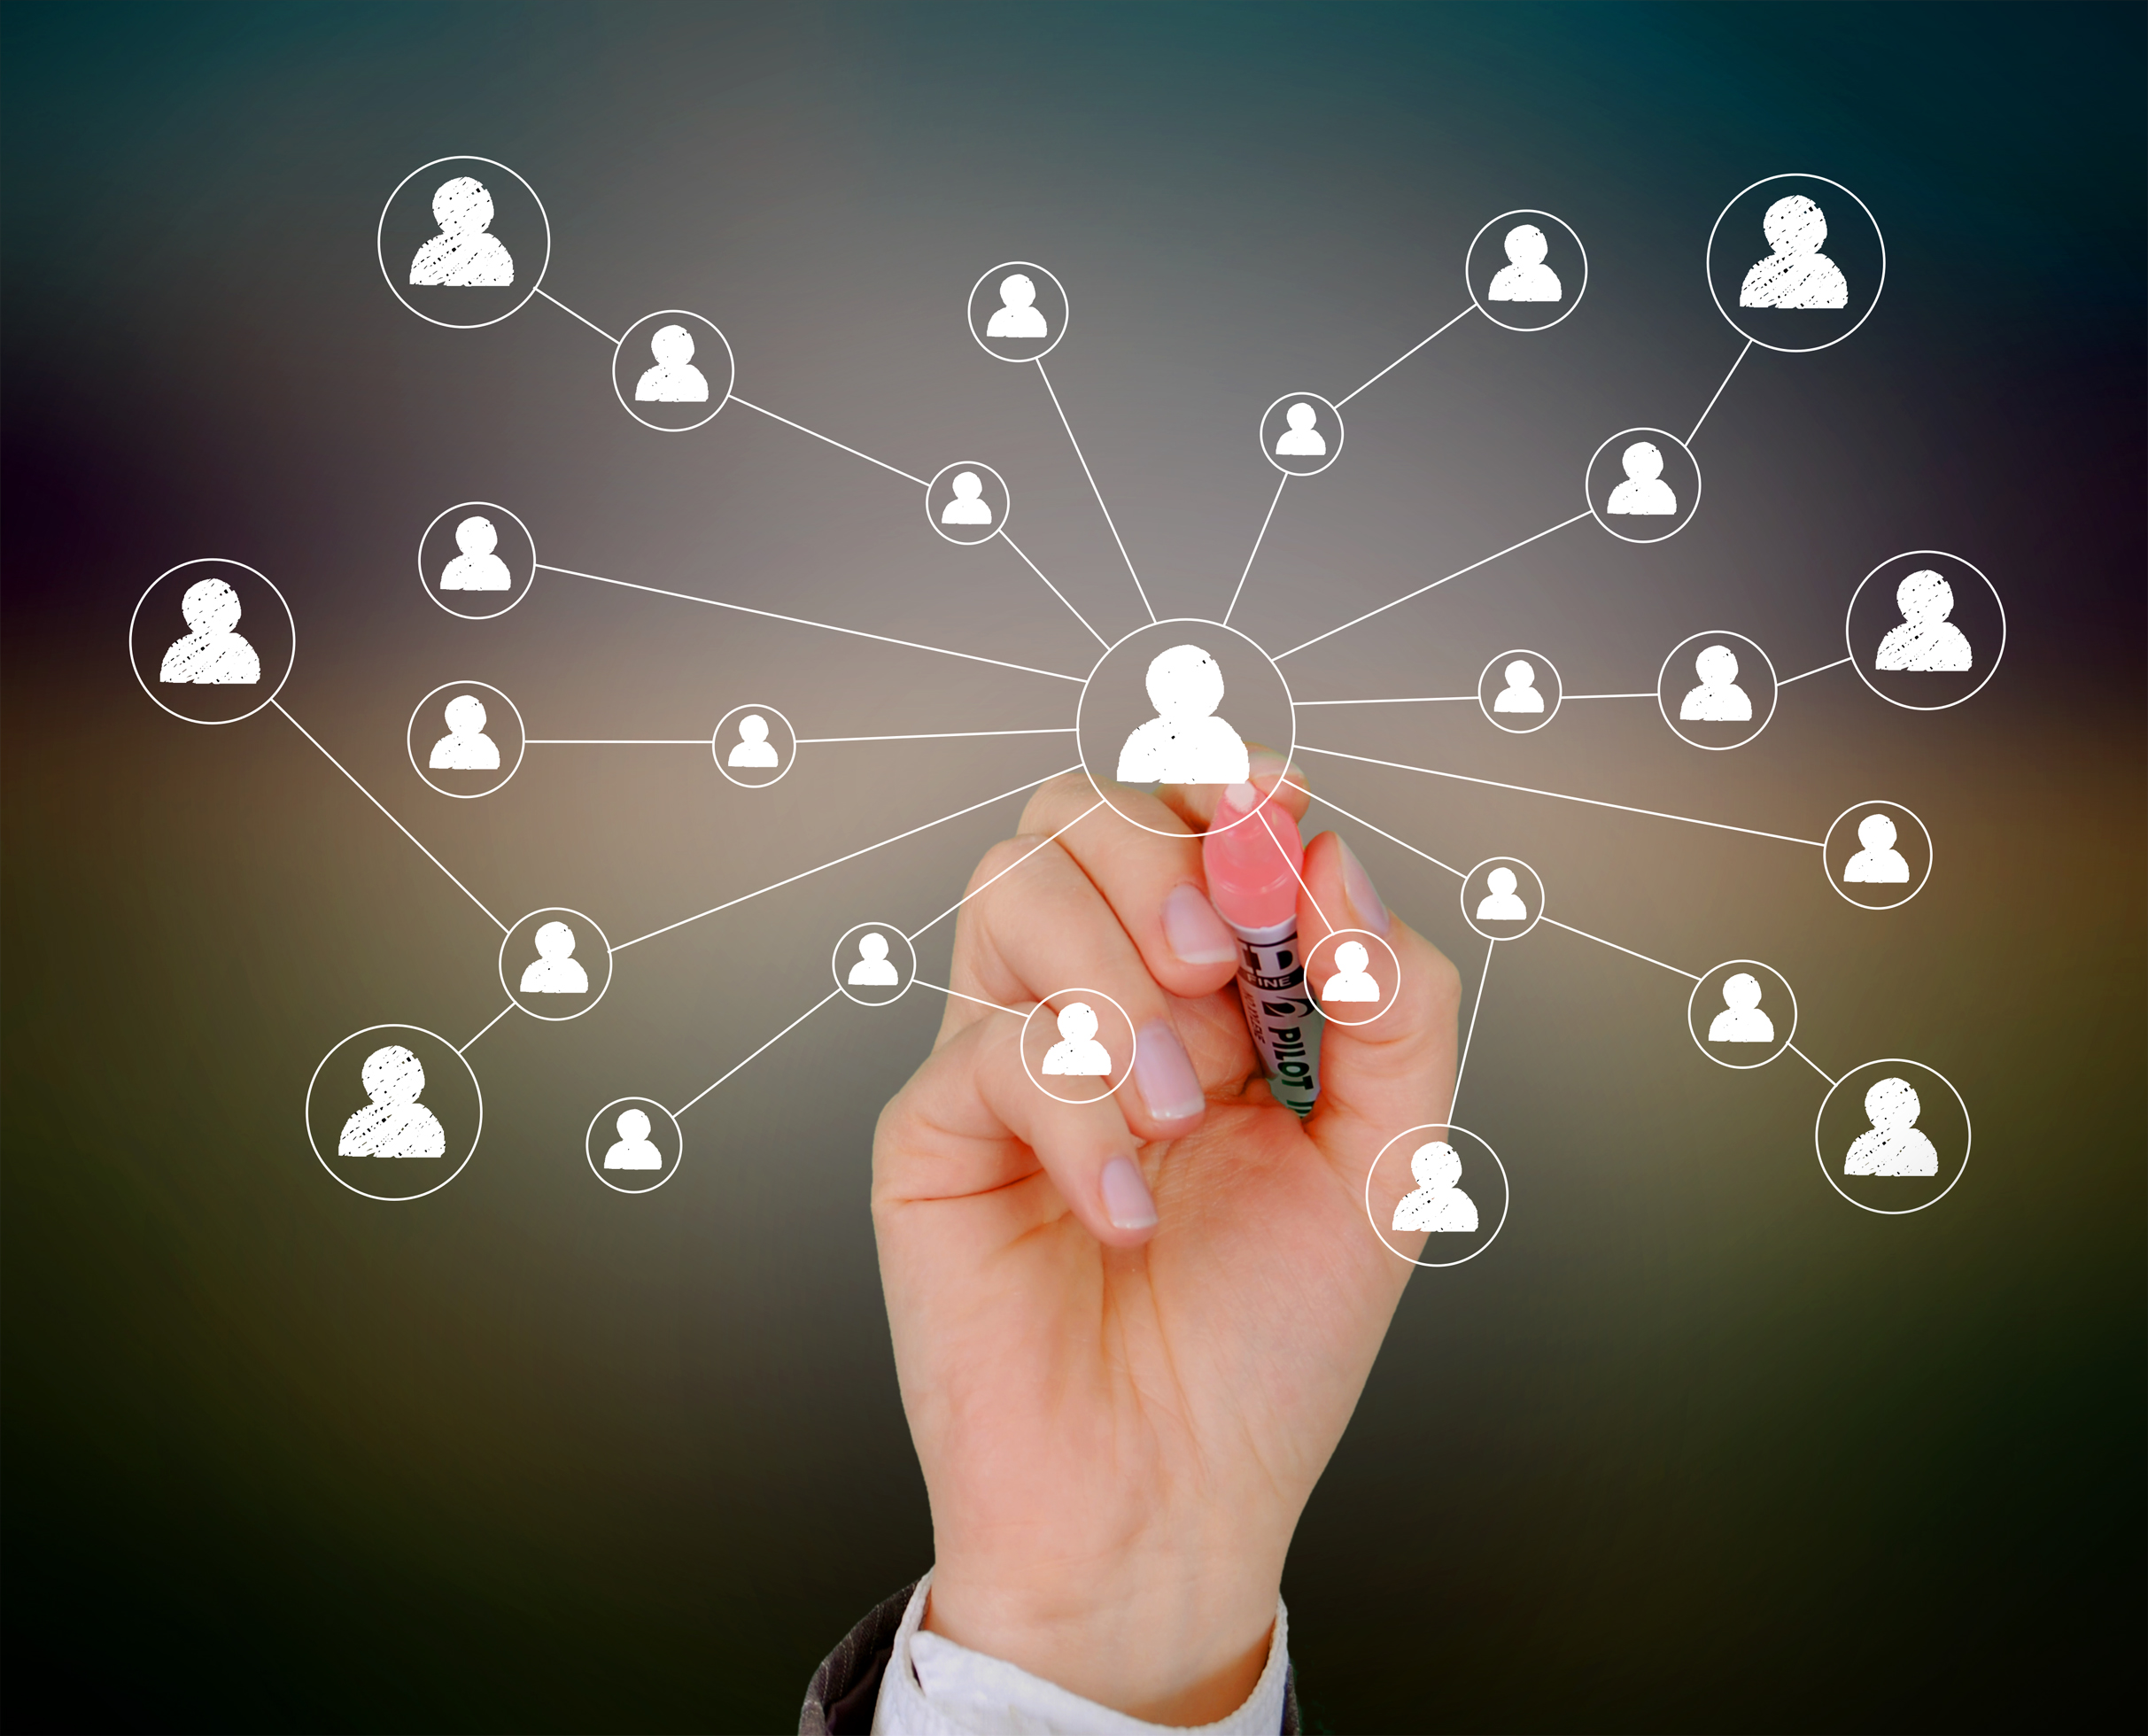 Networking: Where To Start?